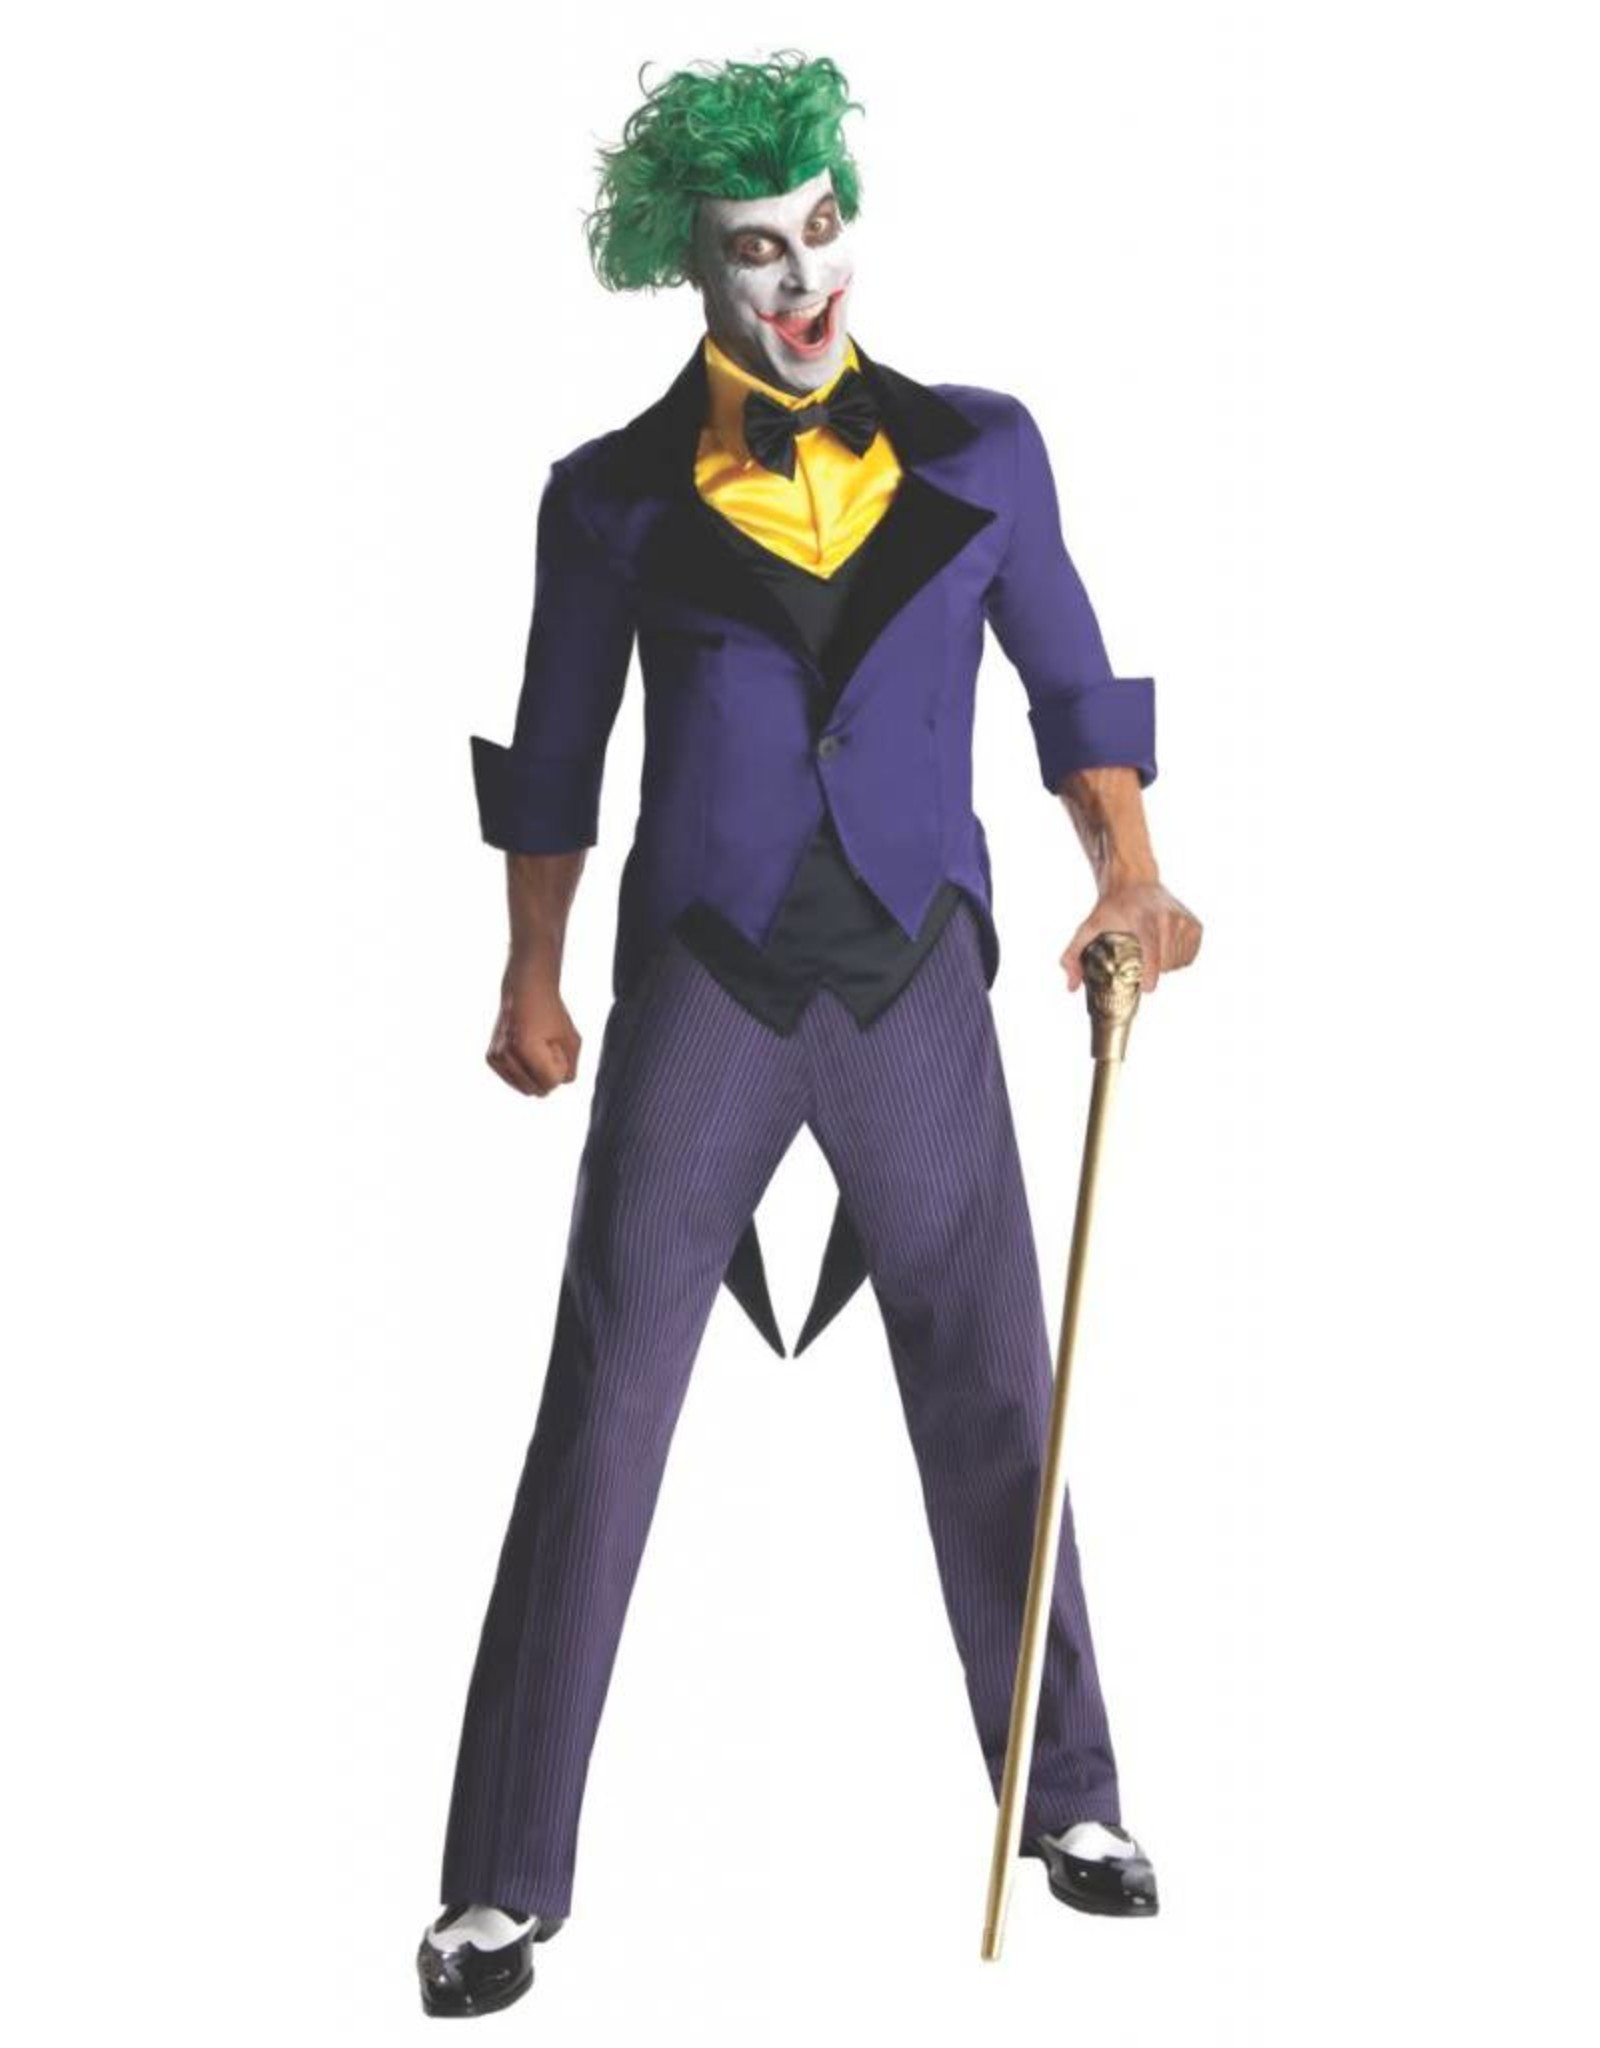 Rubies Costume The Joker - Gotham City Most Wanted